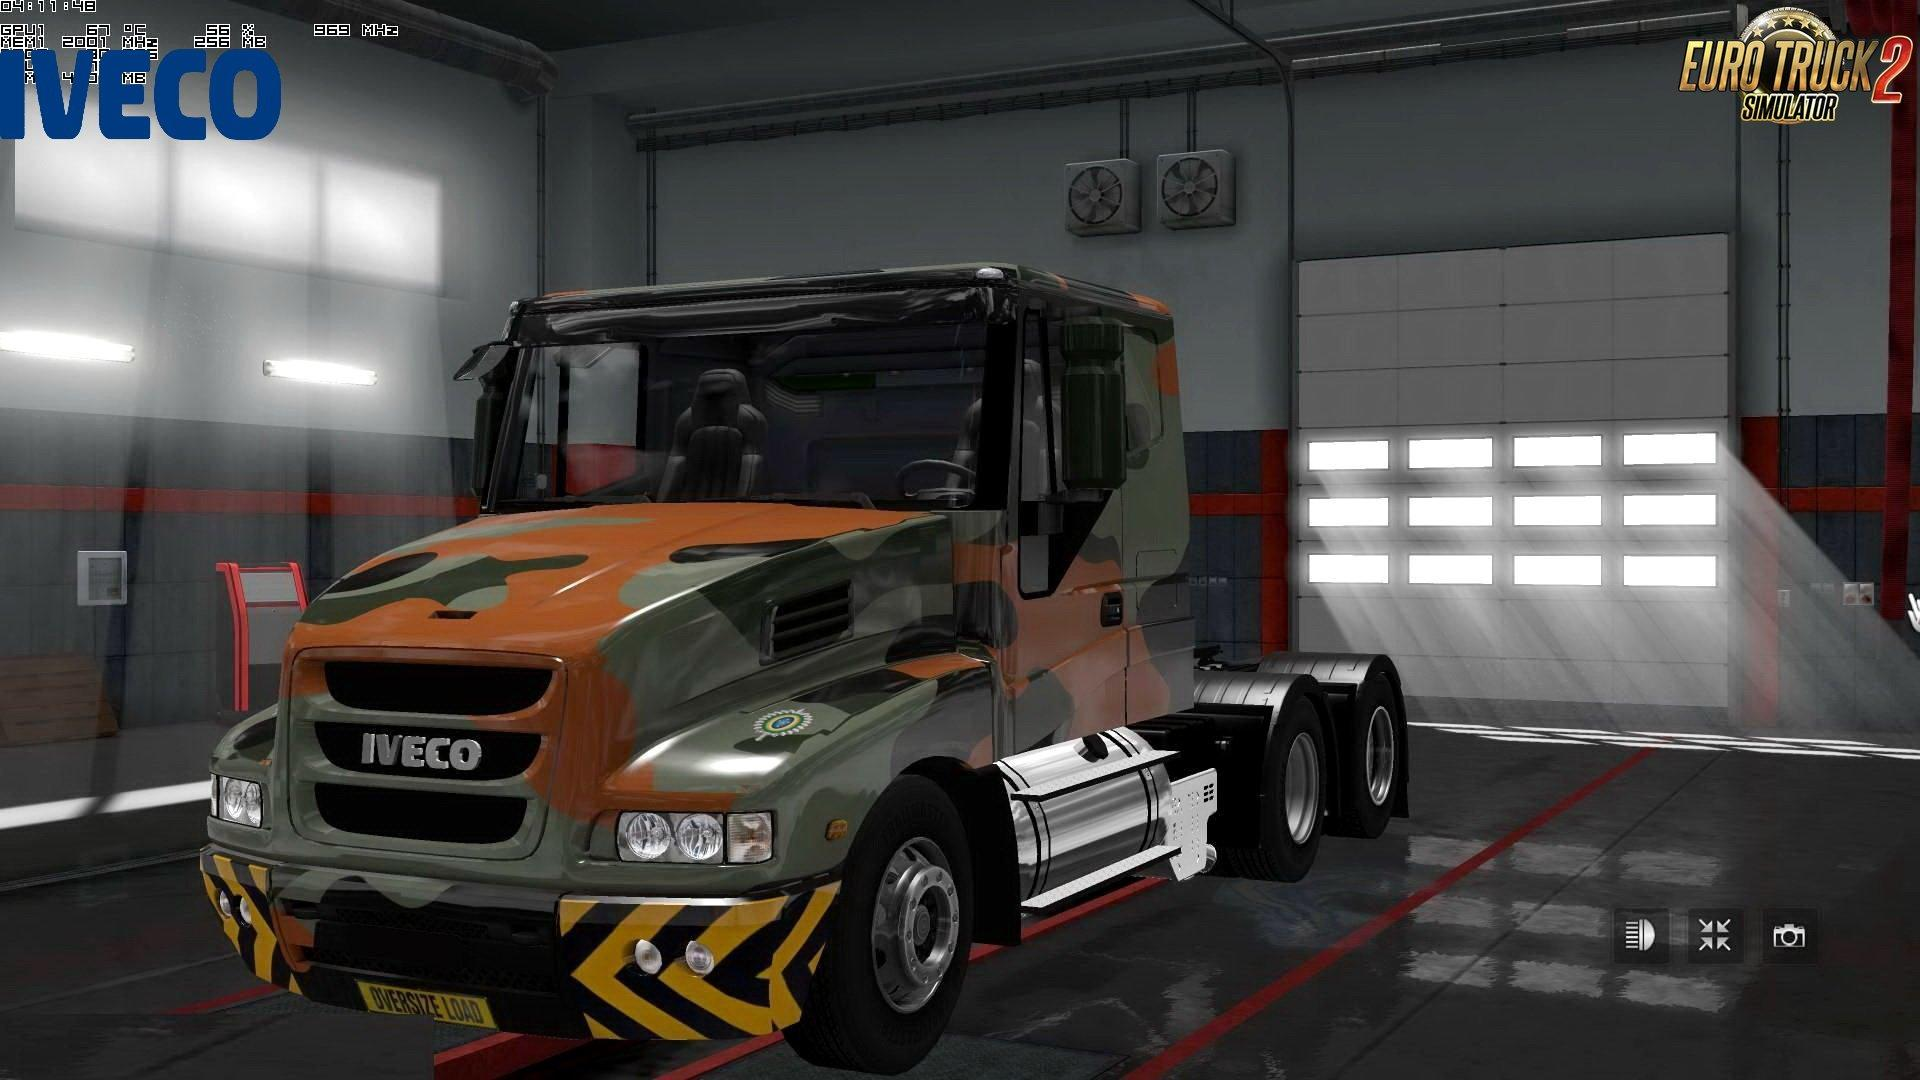 IVECO STRATOR + INTERIOR V4.1 BY CP_MORTIFICATION ETS2 -Euro Truck Simulator 2 Mods